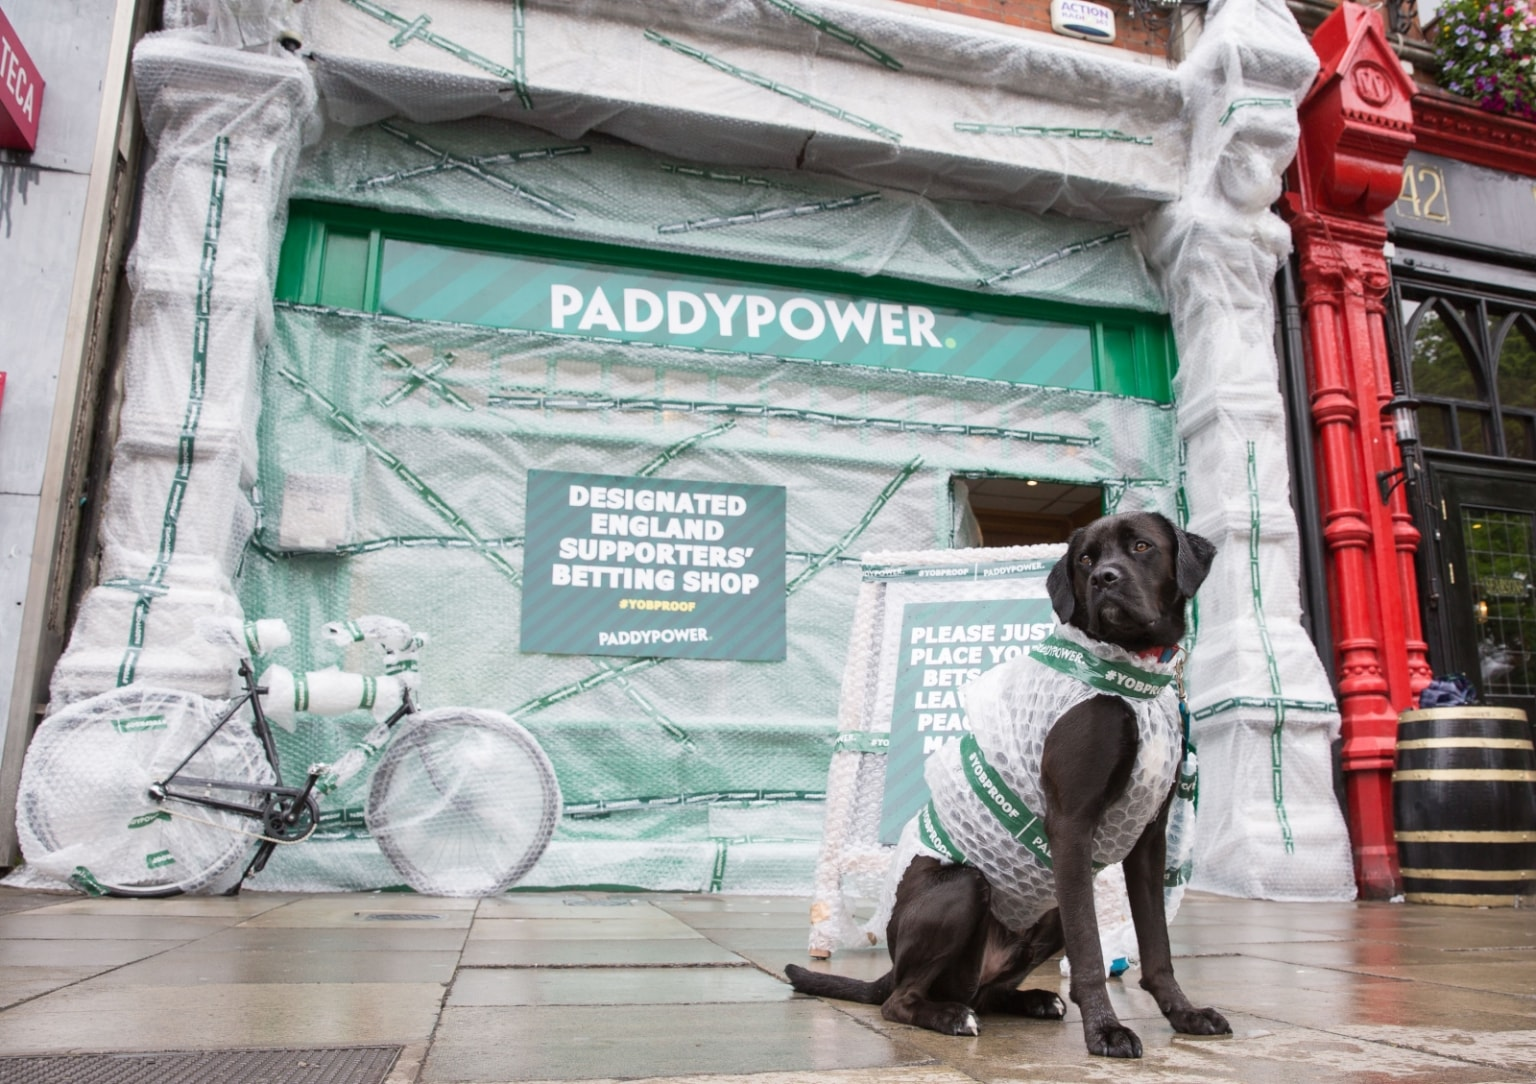 Paddy Power presents Safe Gambling